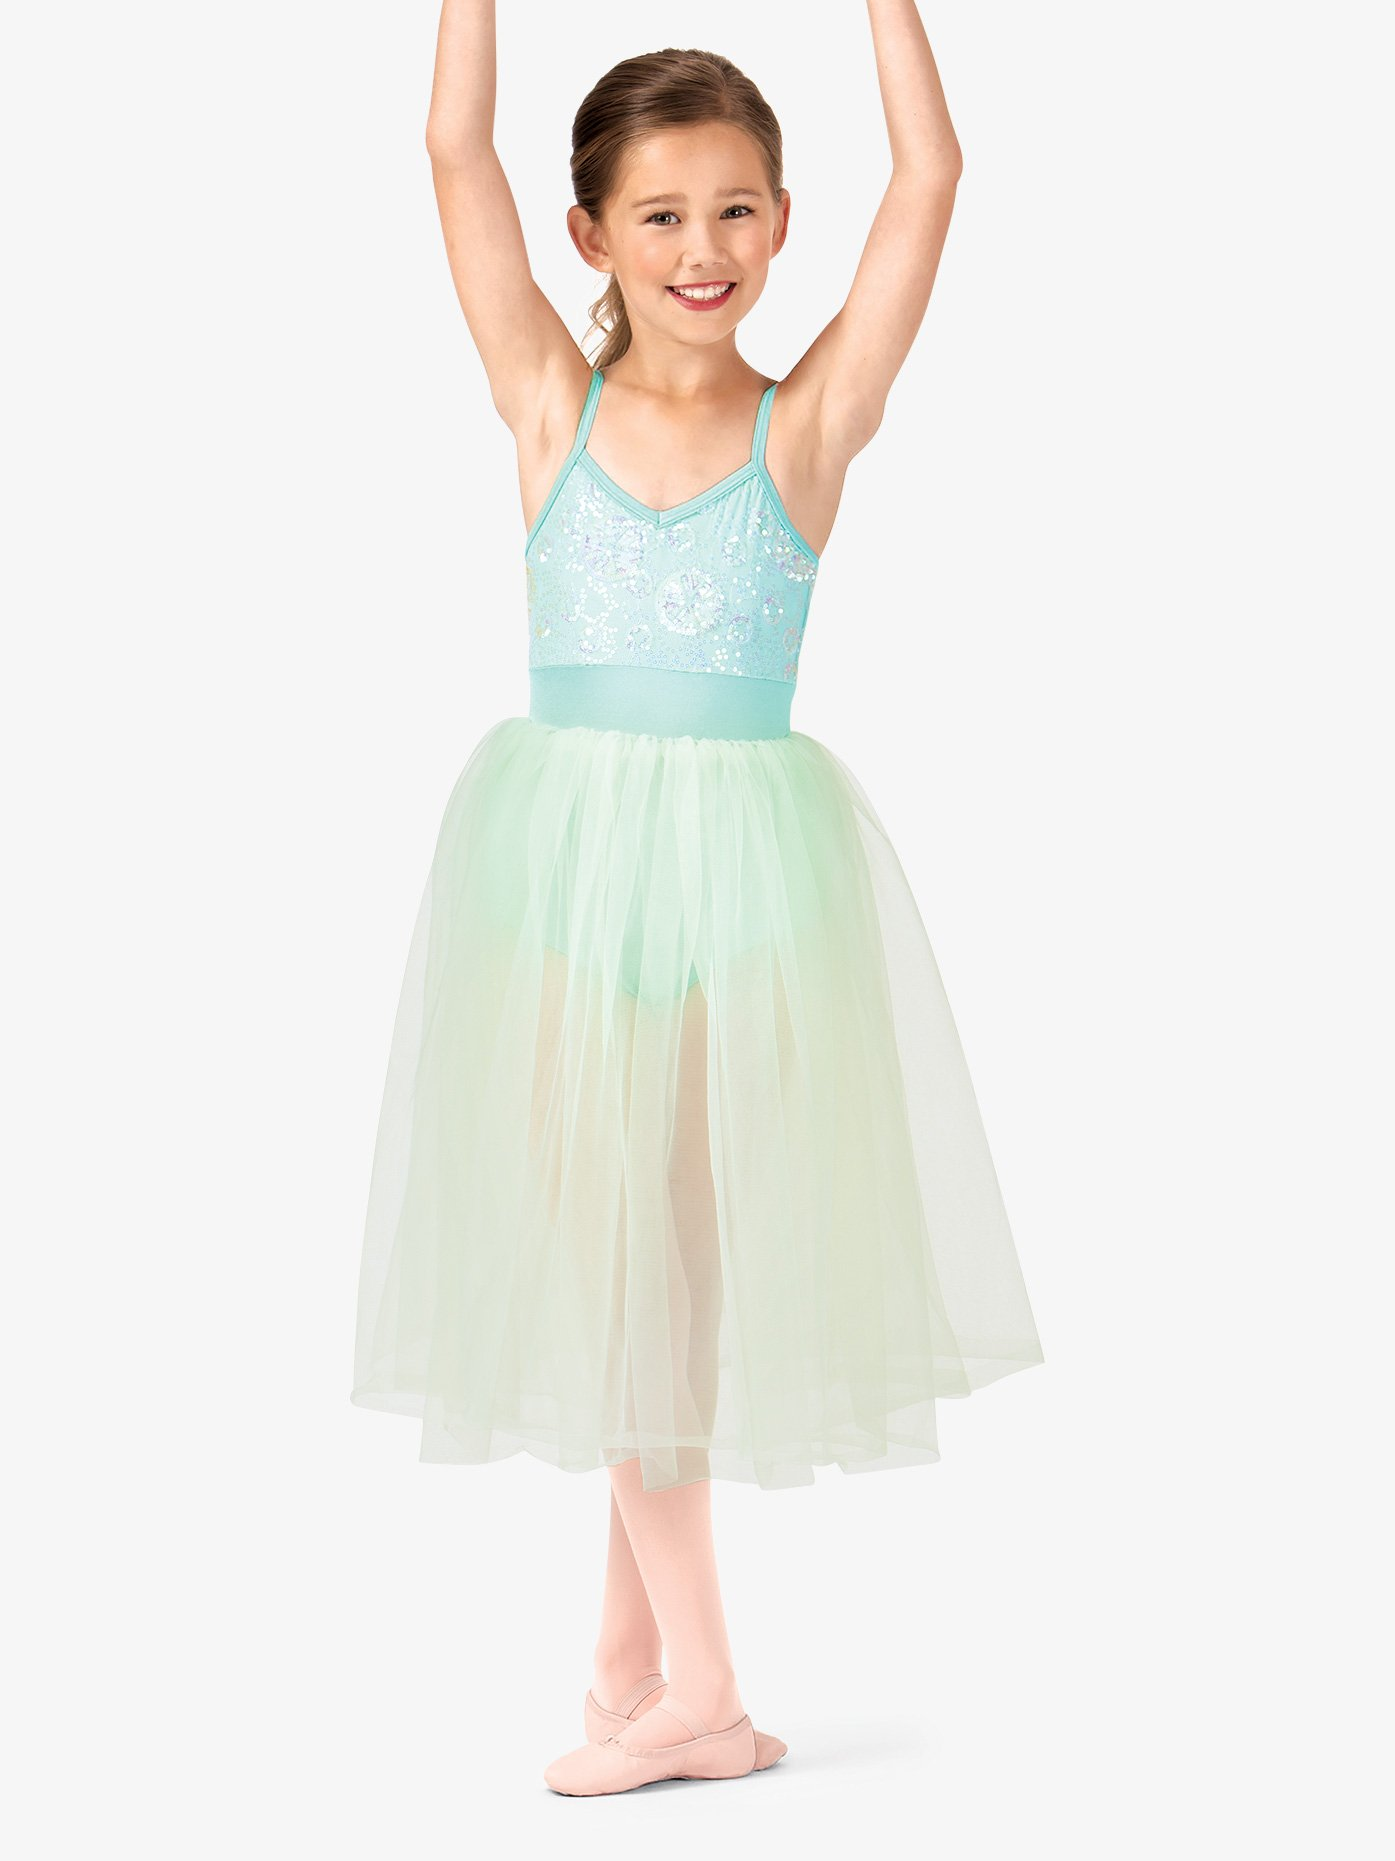 5bac7e476 Romantic Sequin Camisole Tutu Costume Dress - Ballet Lyrical